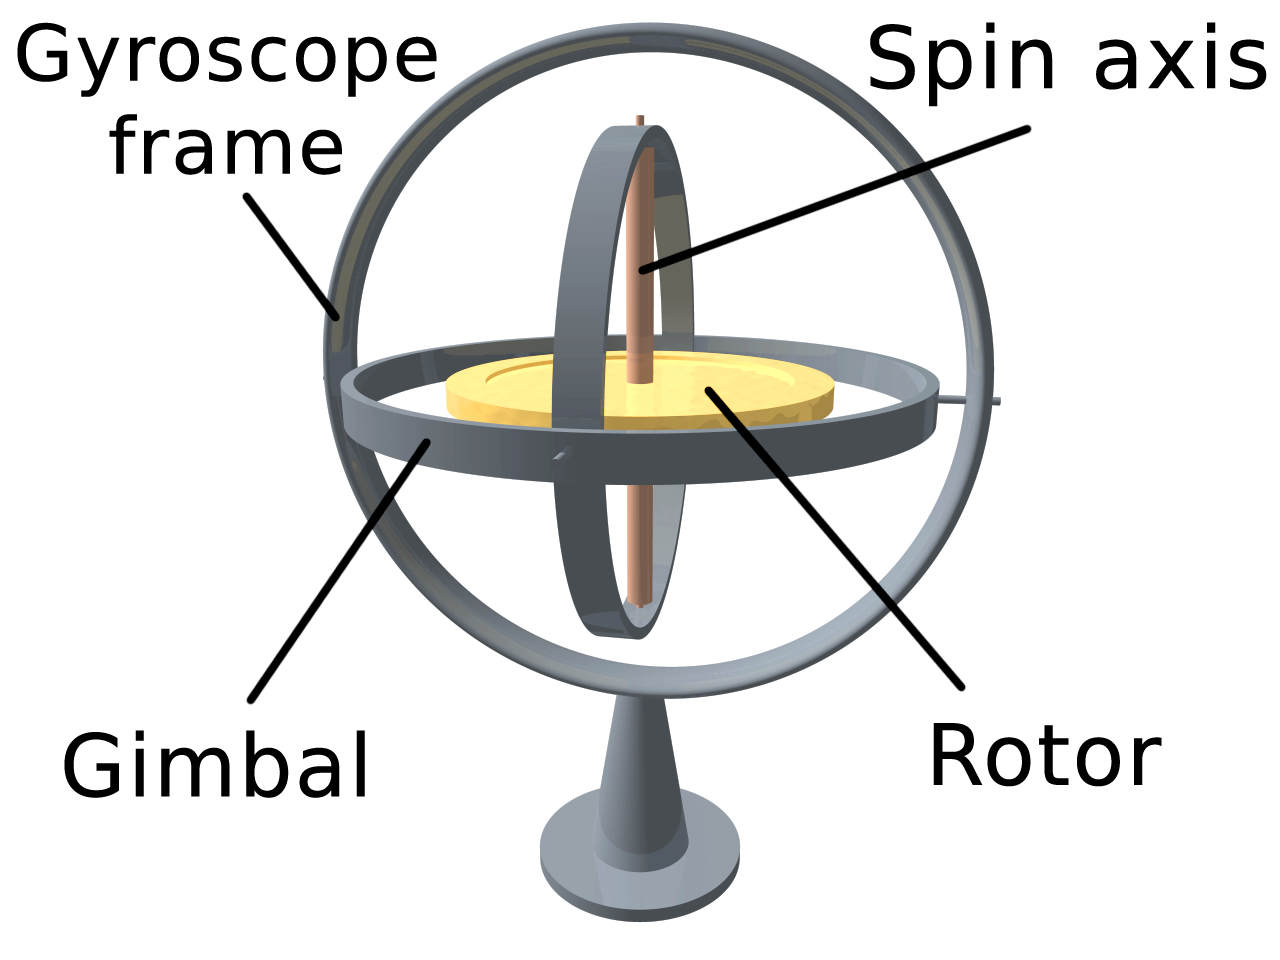 Gyroscope Png - File:3D Gyroscope.png - Wikimedia Commons